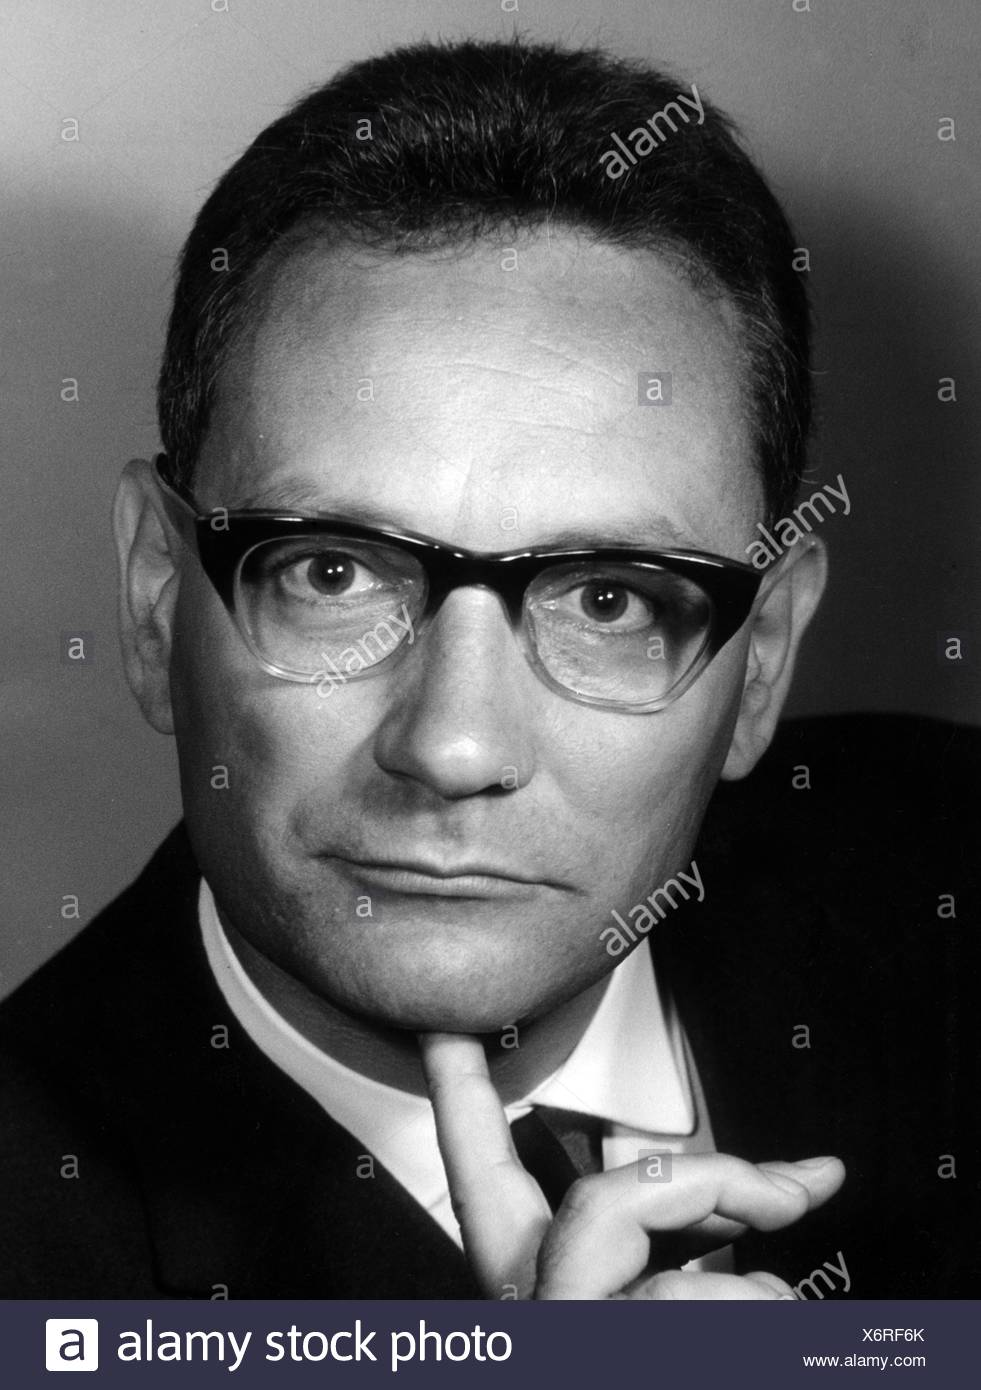 Fischer-Fabian, Siegfried, 22.9.1922 - 16.11.2011, German journalist and author / writer, portrait, 1960s, Additional-Rights-Clearances-NA - Stock Image